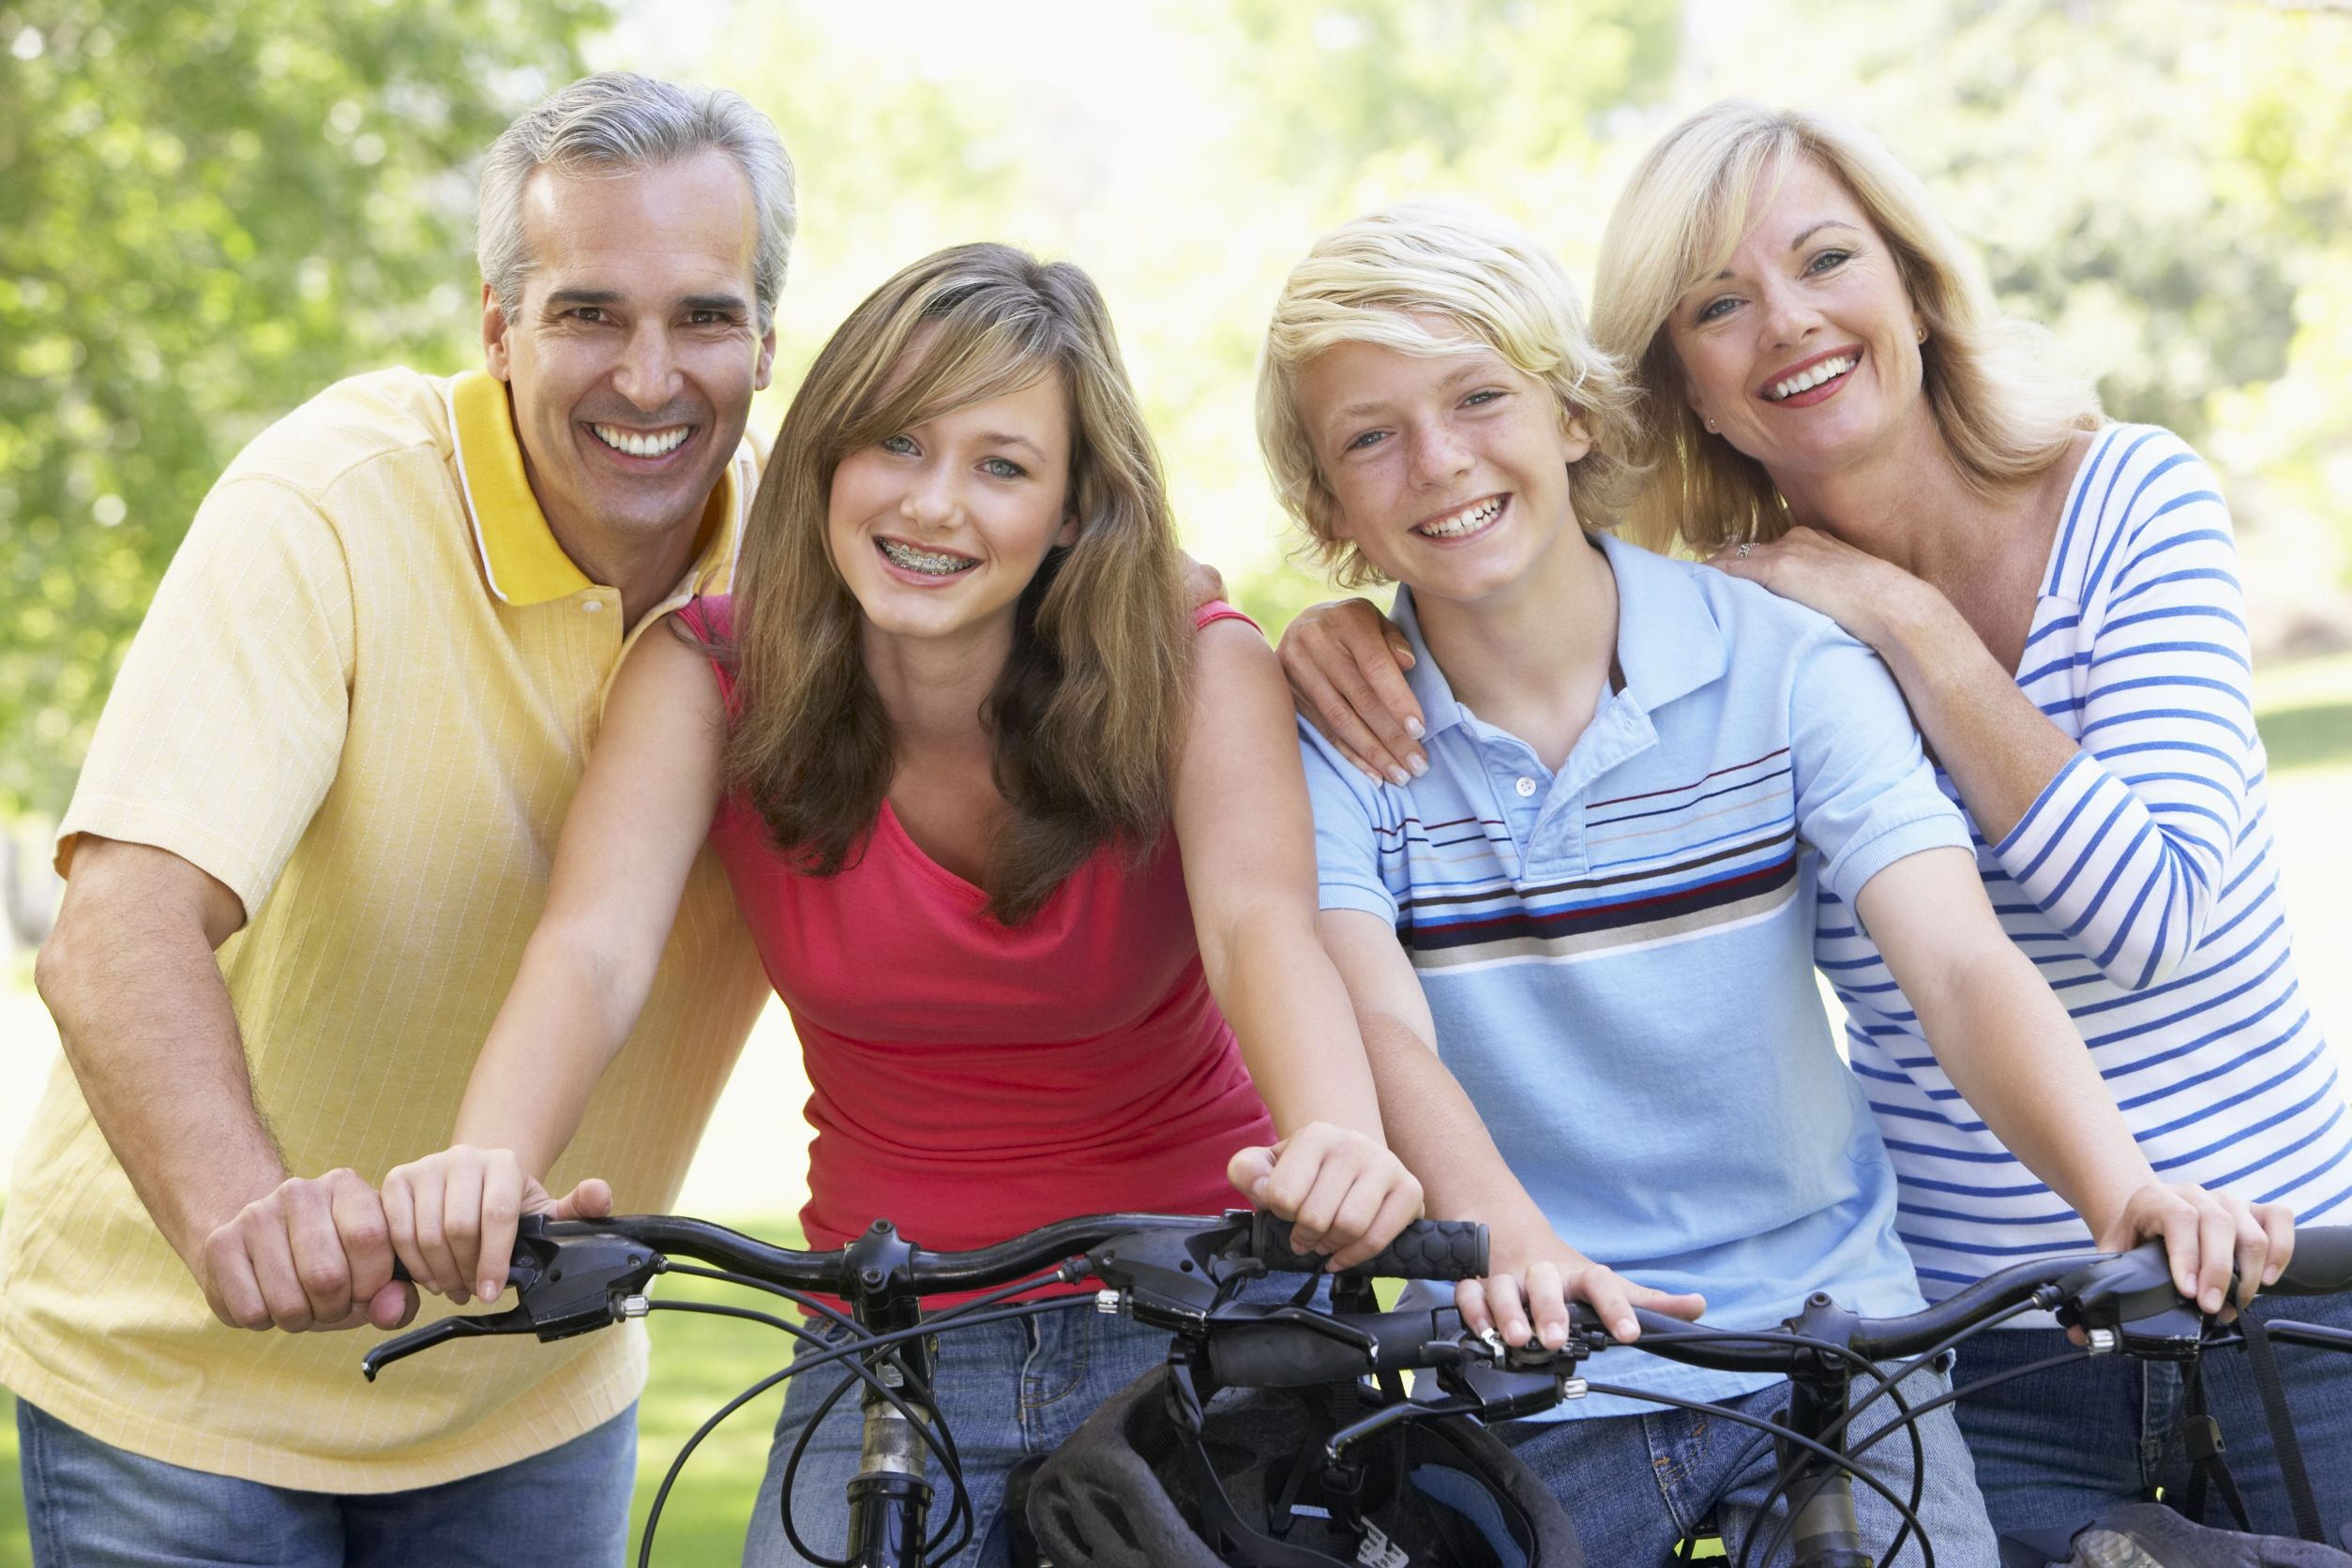 Family smiling and riding bikes